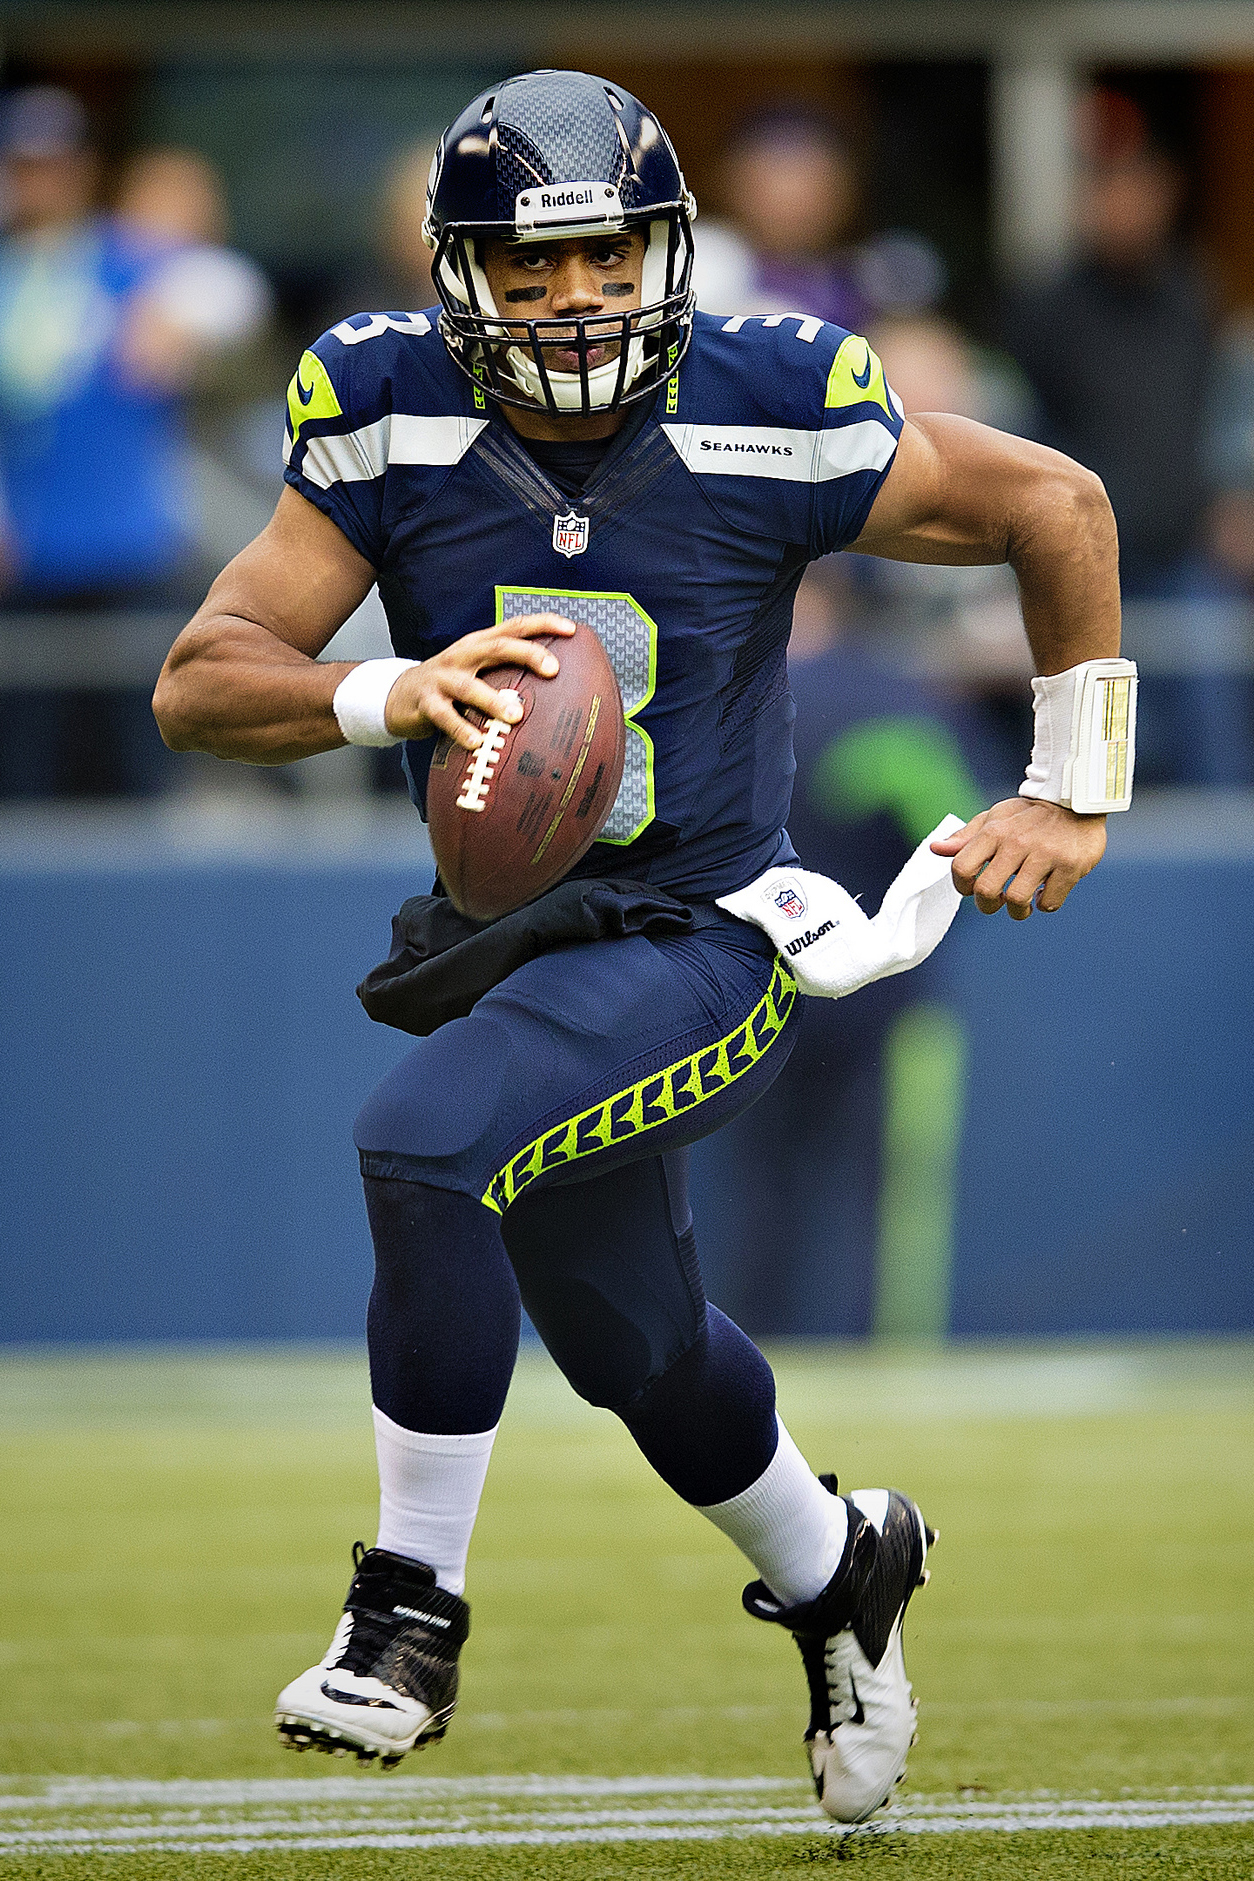 Nike NFL Jerseys - Seattle Seahawks - Wikipedia, the free encyclopedia